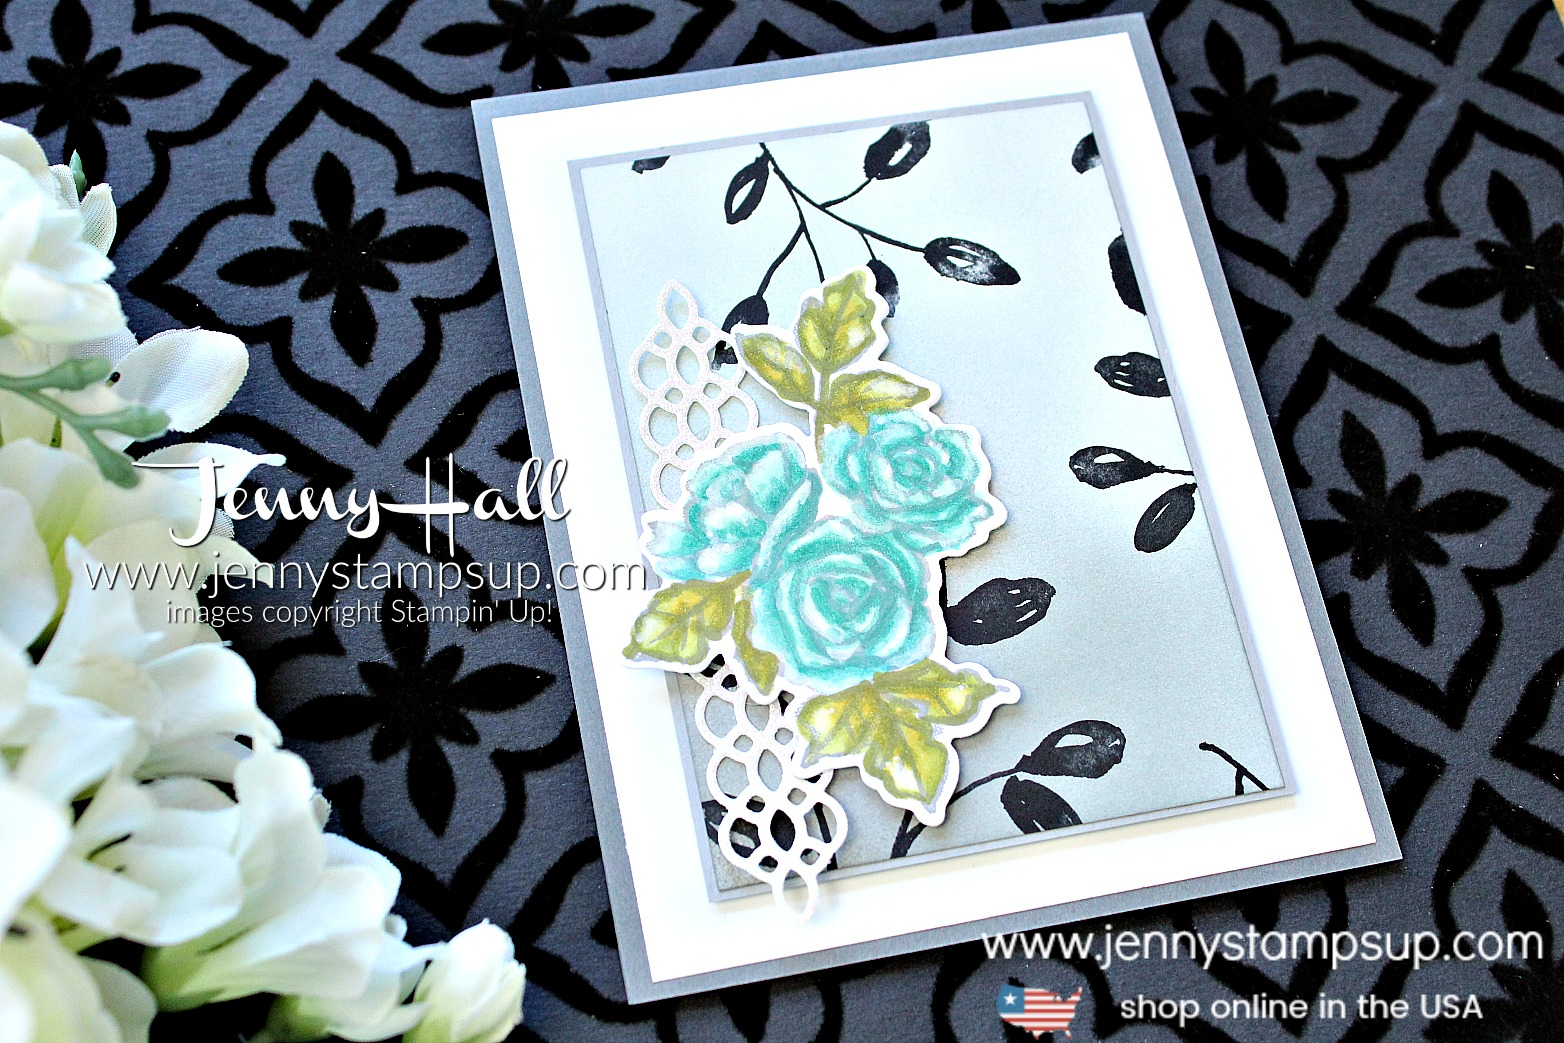 Stamping Sunday Blog Hop Guest Designer card by Jenny Hall at www.jennyhalldesign.com with #petalpassion #inkblending #brayer #twilight #morninglight #moonlight #petalpassiondsp #stamping #stampinup #cards #stampinblends #ombre #cardmakingtechnique #videotutorial #cardmakingvideo #youtuber #sympathycard #cascards #papercraft #watercolor #paperembossing #guestdesigner #ssbh #stampingsunday #stampingsundaybloghop